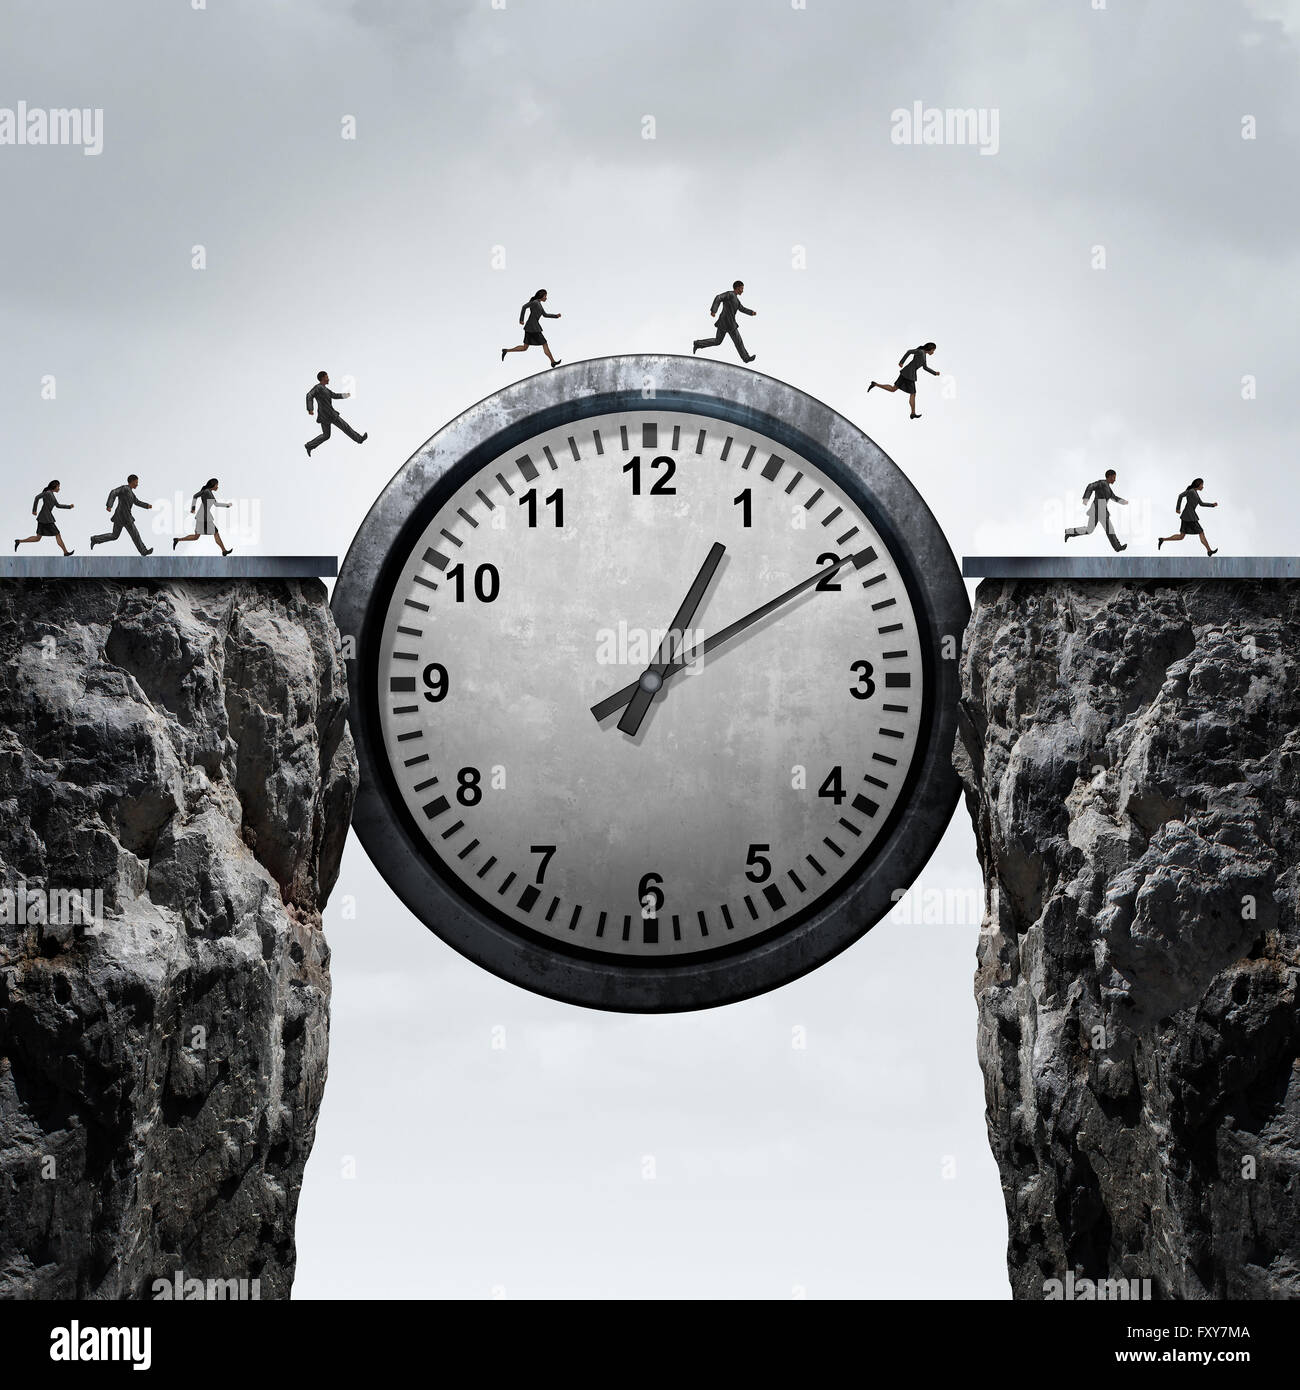 Business time concept as a group of running businessmen and businesswomen using a giant clock to cross over a cliff - Stock Image